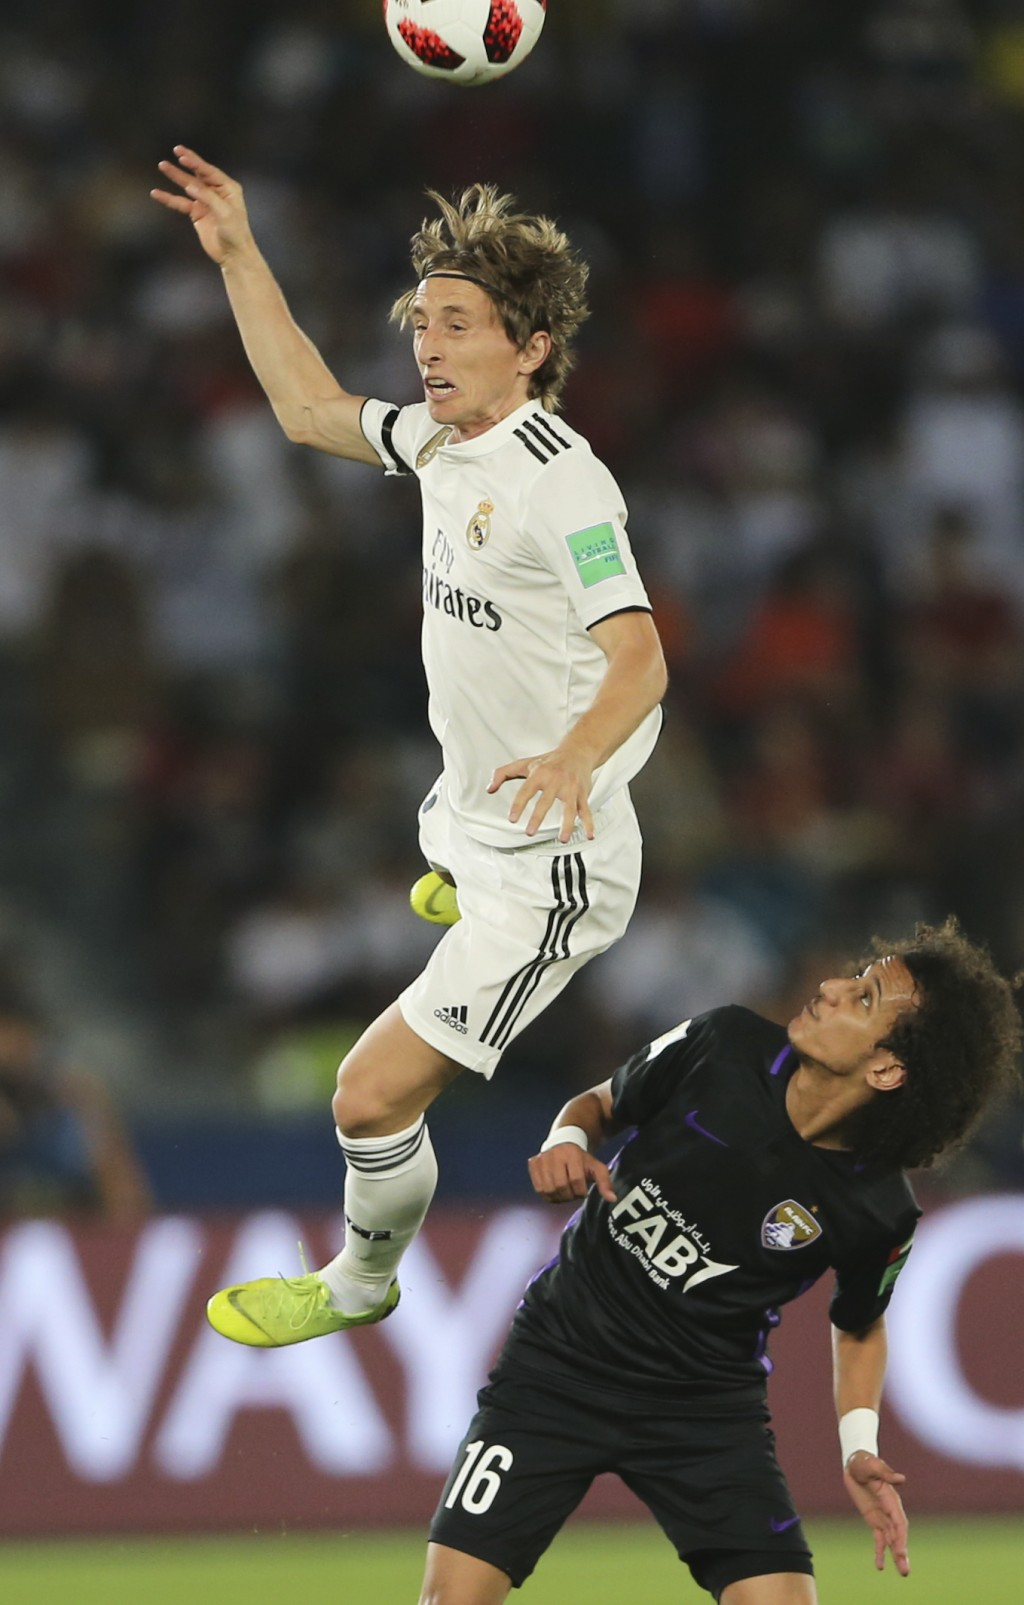 Real Madrid's Luka Modric heads the ball above Emirates's Al Ain Mohamed Abdulrahman during the Club World Cup final soccer match between Real Madrid